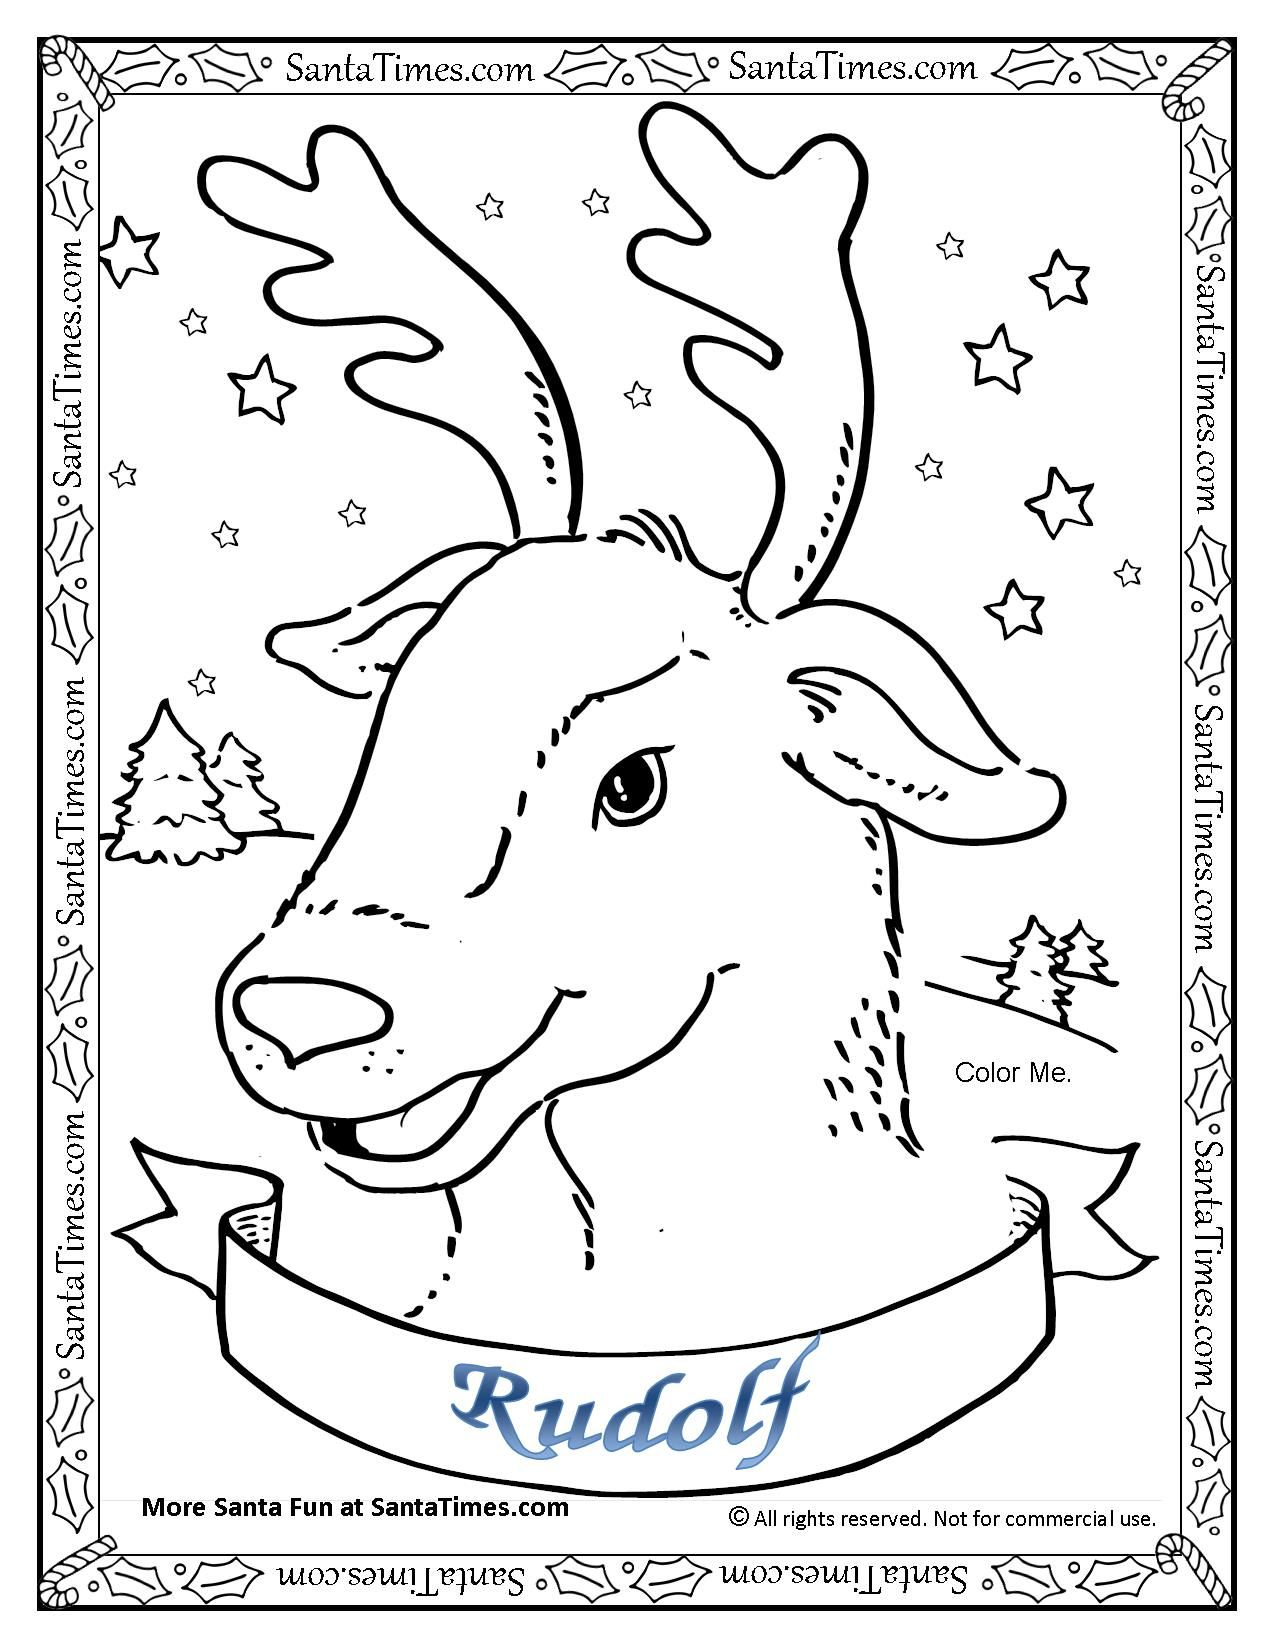 Rudolf The Red Nosed Reindeer Coloring Page Printout. More Fun Holiday  Activities At SantaTimes.com